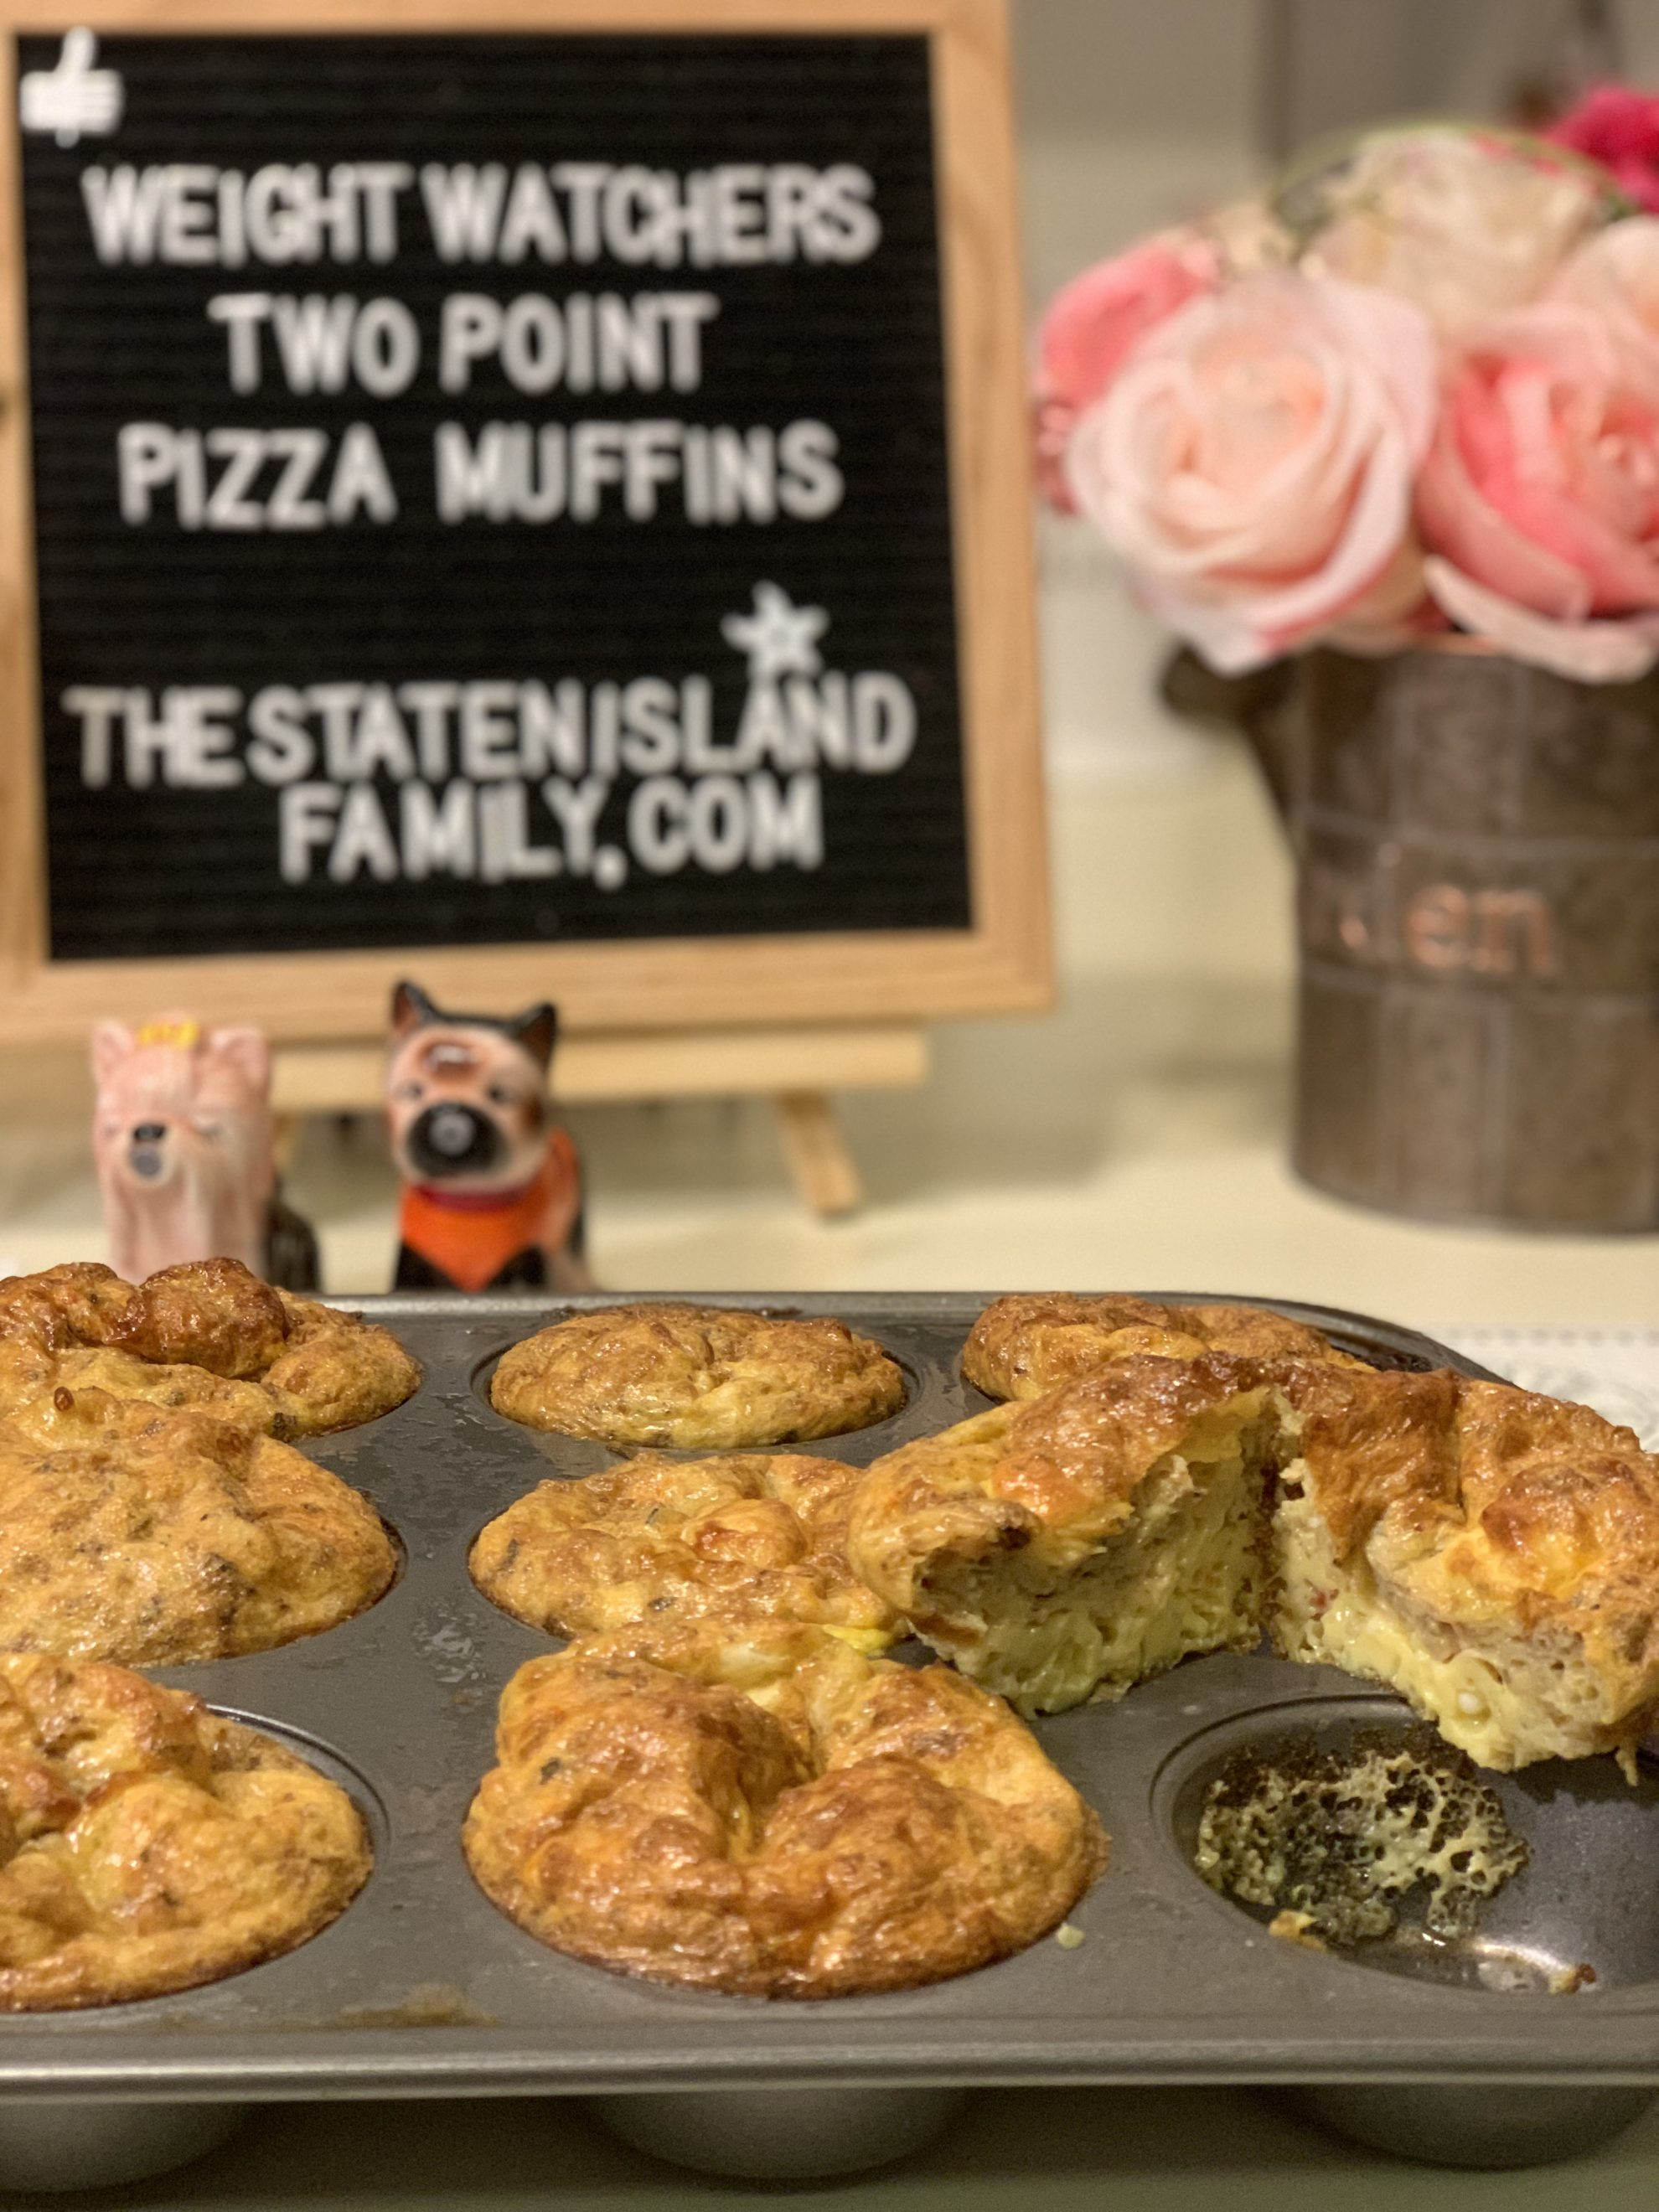 these are literally almost as good as pizza 🍕! just two points per muffin! Get the recipe for these weight watchers pizza muffins here: https://www.thestatenislandfamily.com/weight-watchers-pizza-muffins/